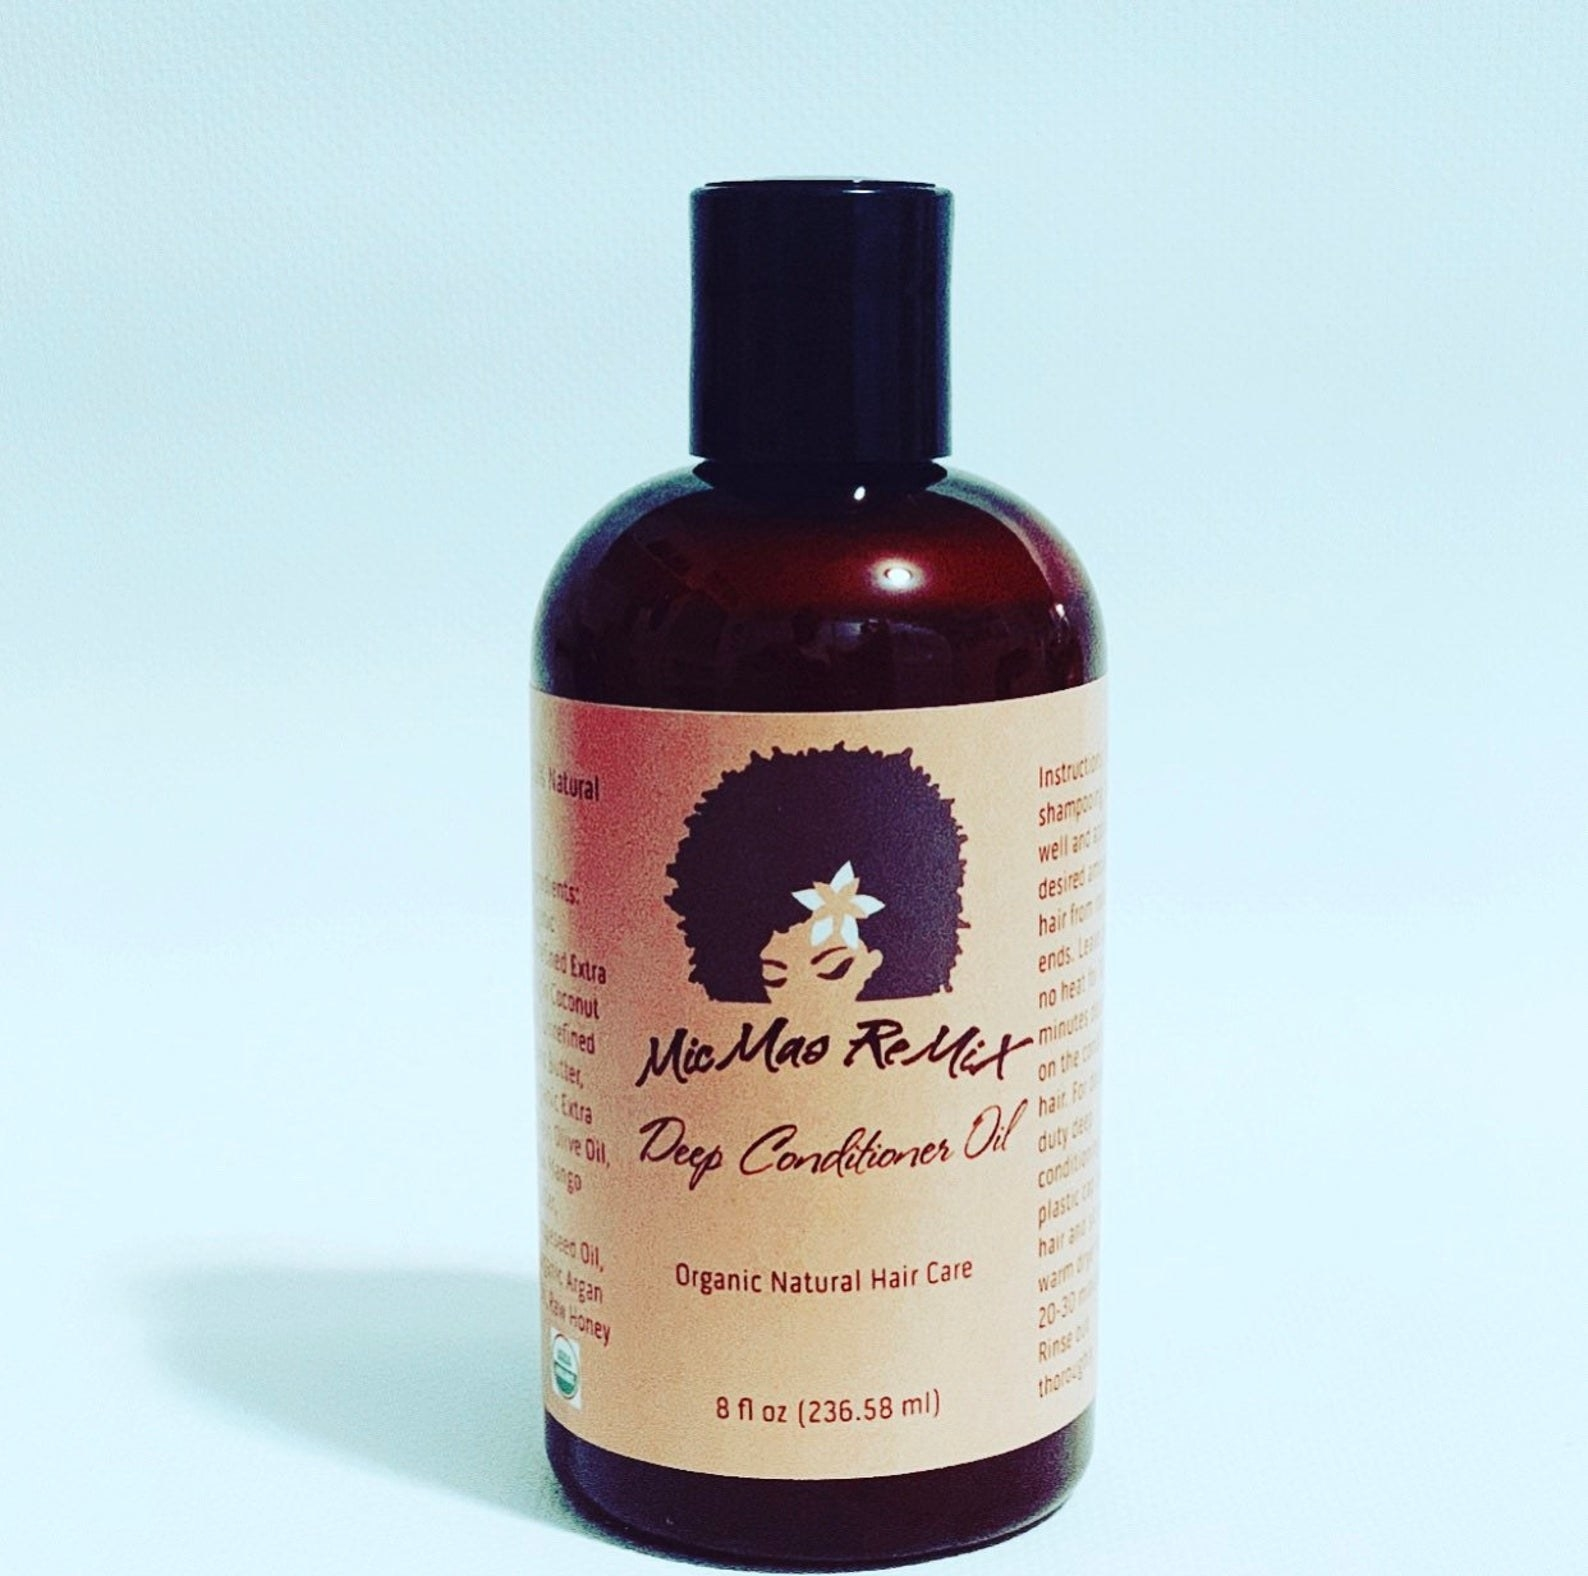 A bottle of the deep conditioner oil